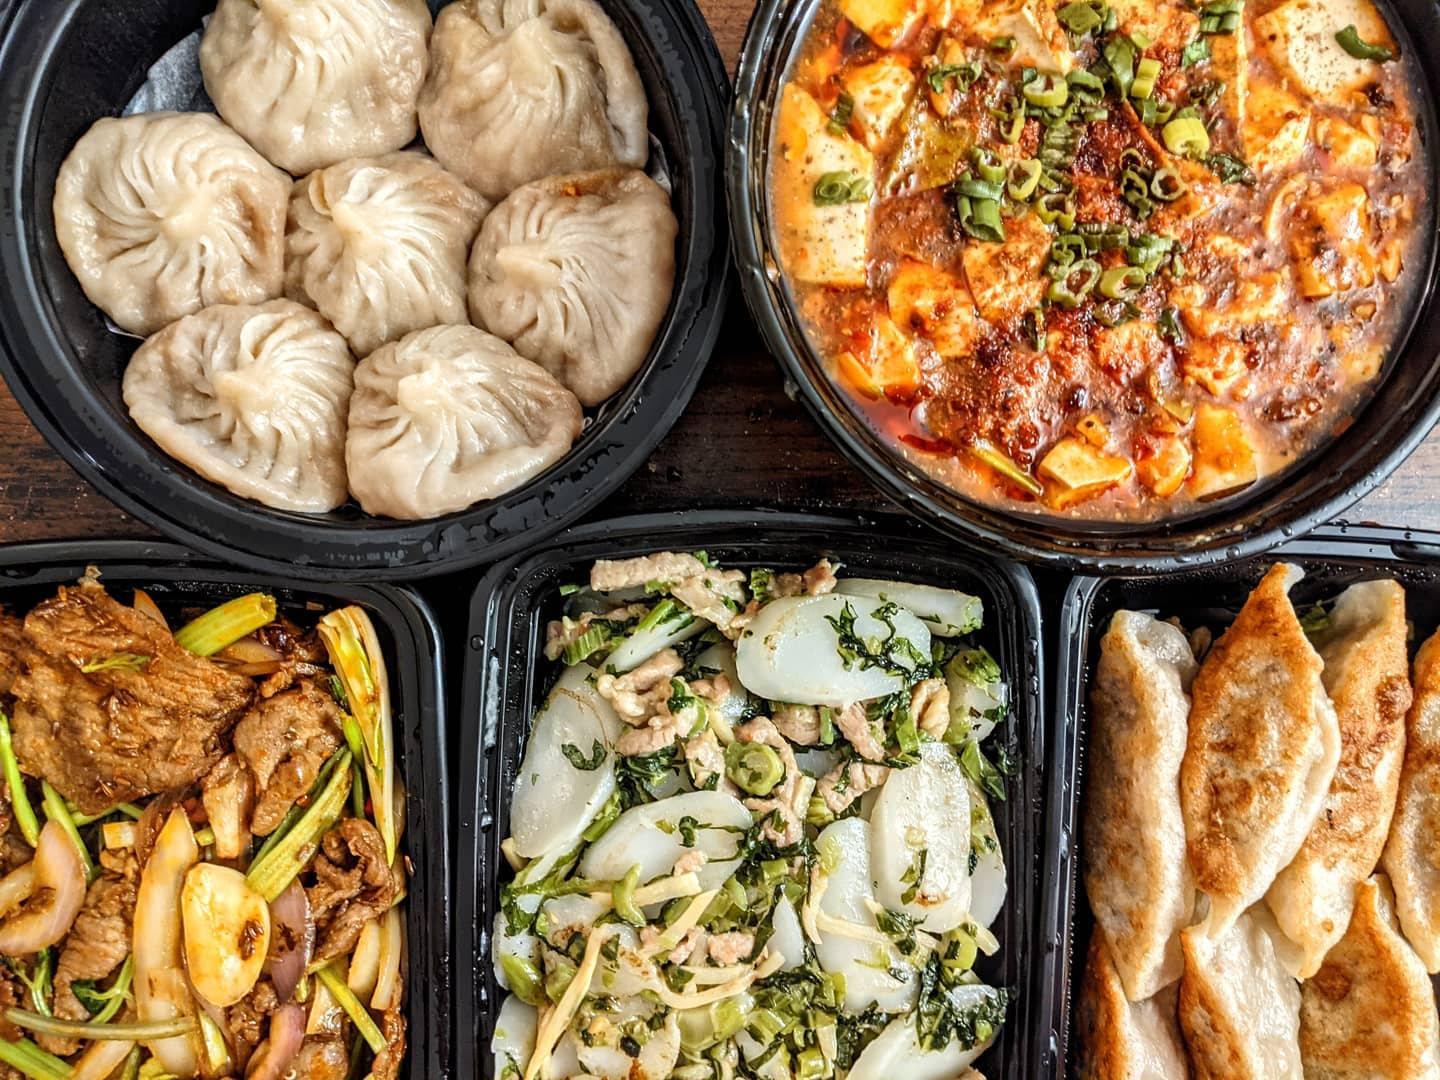 Overhead view of two round and three rectangular black plastic takeout containers of Chinese food, including two kinds of dumplings, ma po tofu, oval rice cakes with greens and slivers of pork, and more.